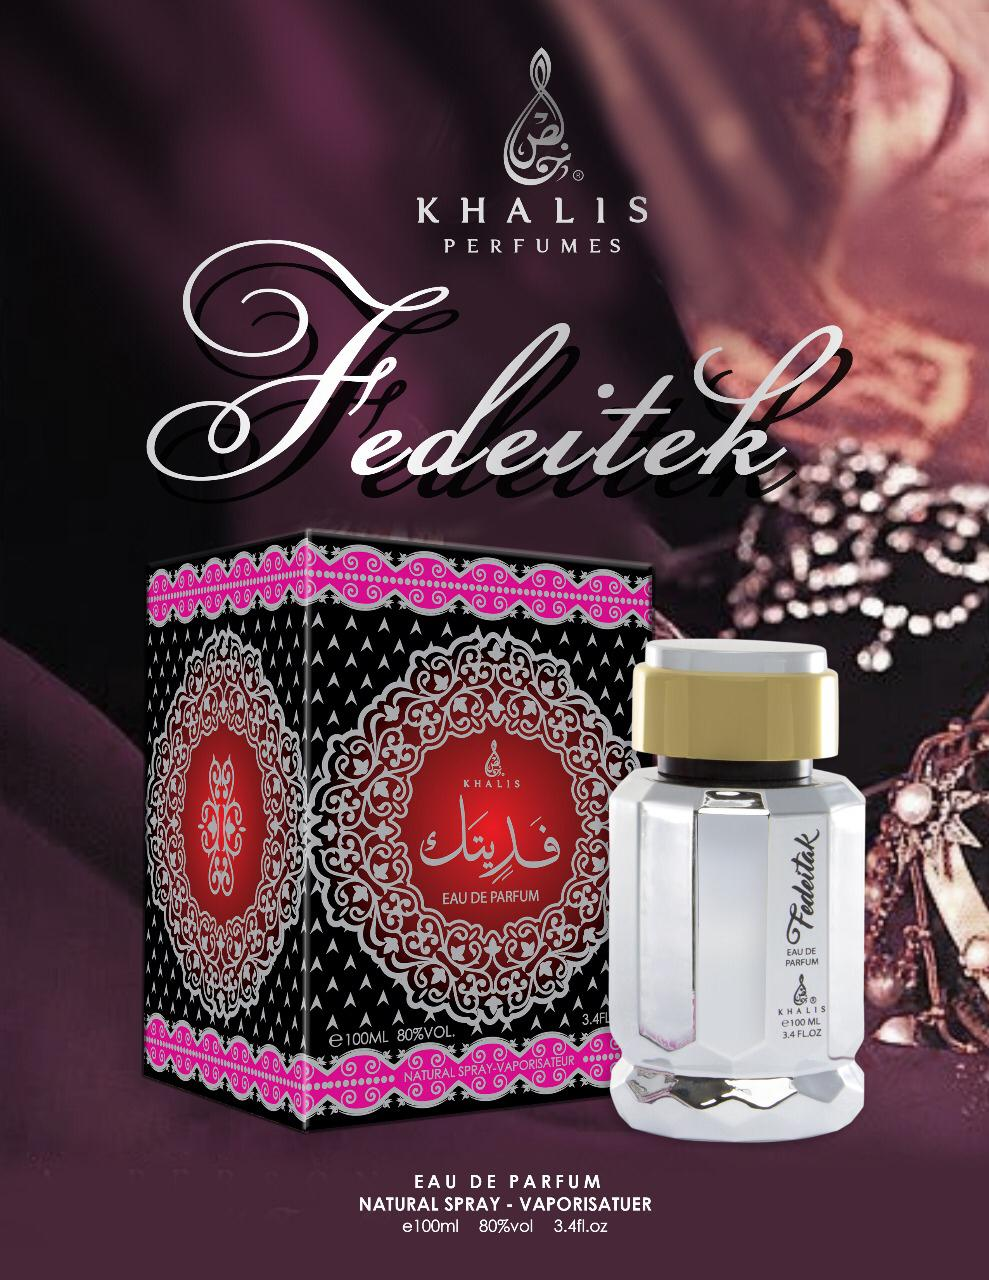 khalis-fedeitak-perfume-for-men-and-women-100-ml-edp